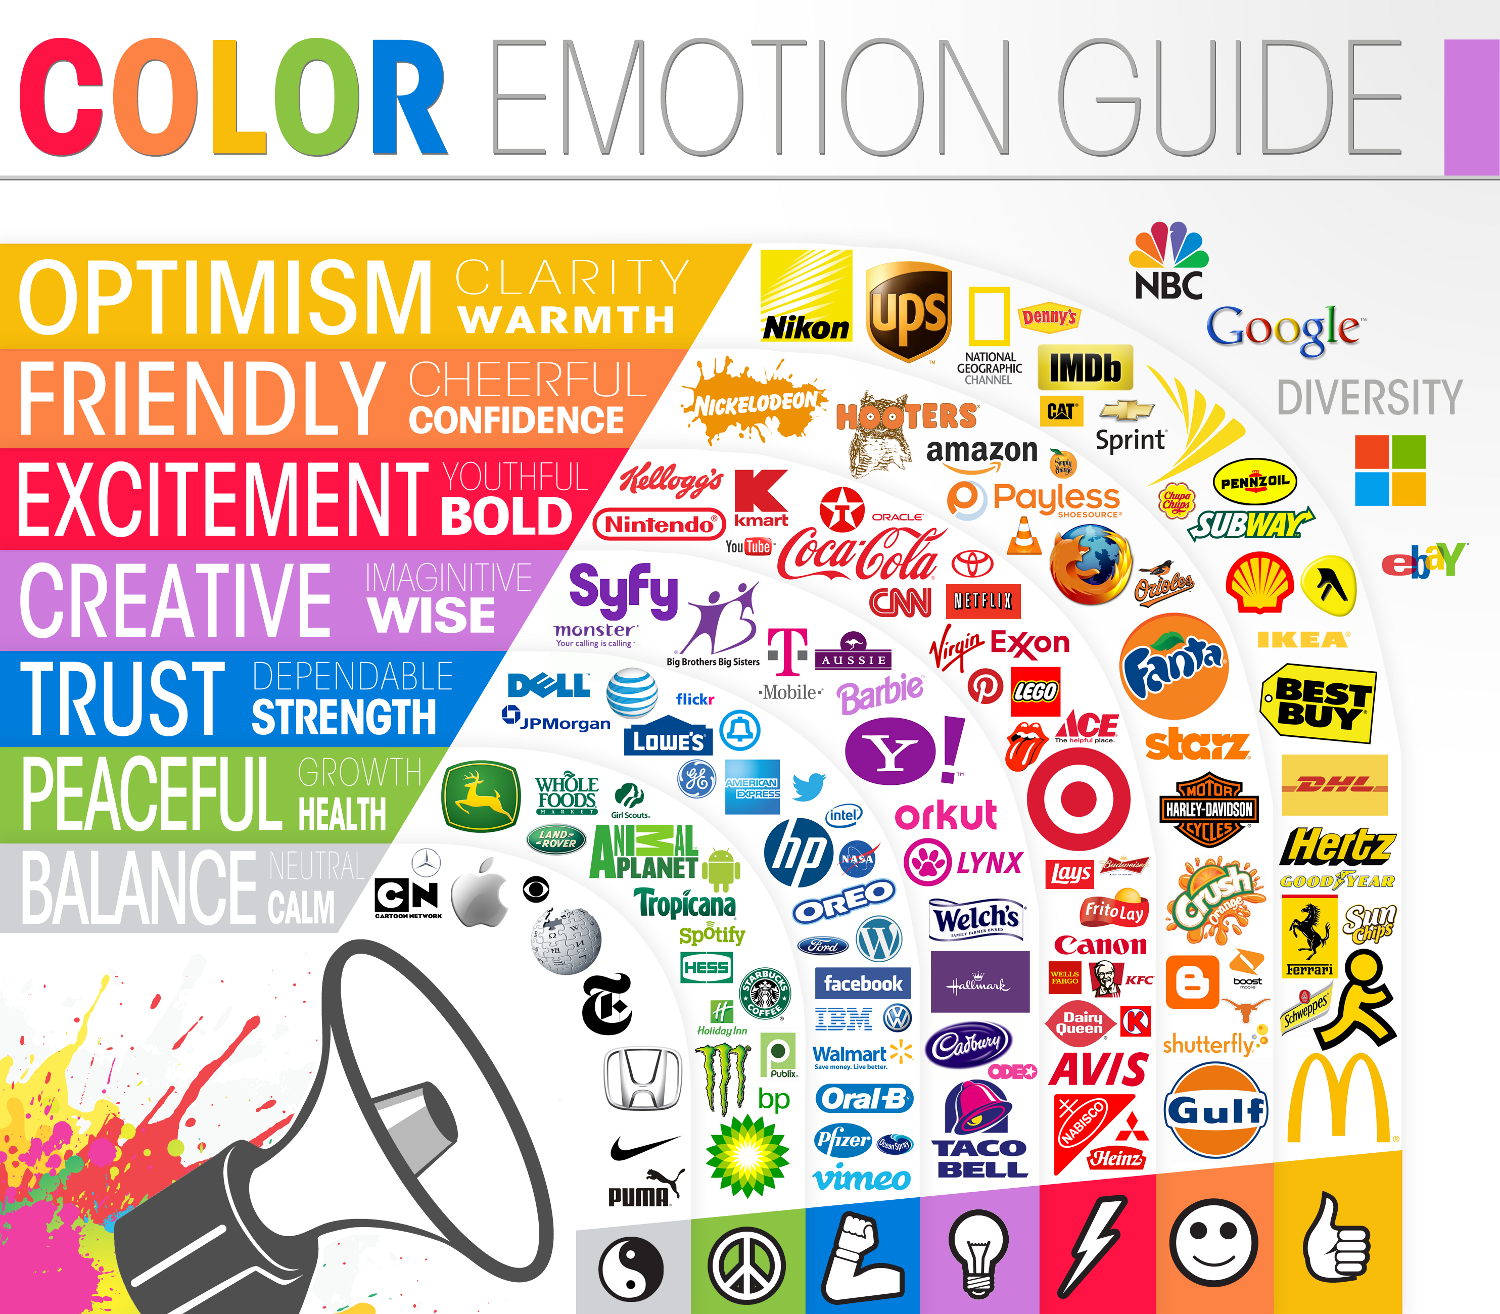 画像:Color Emotion Guide